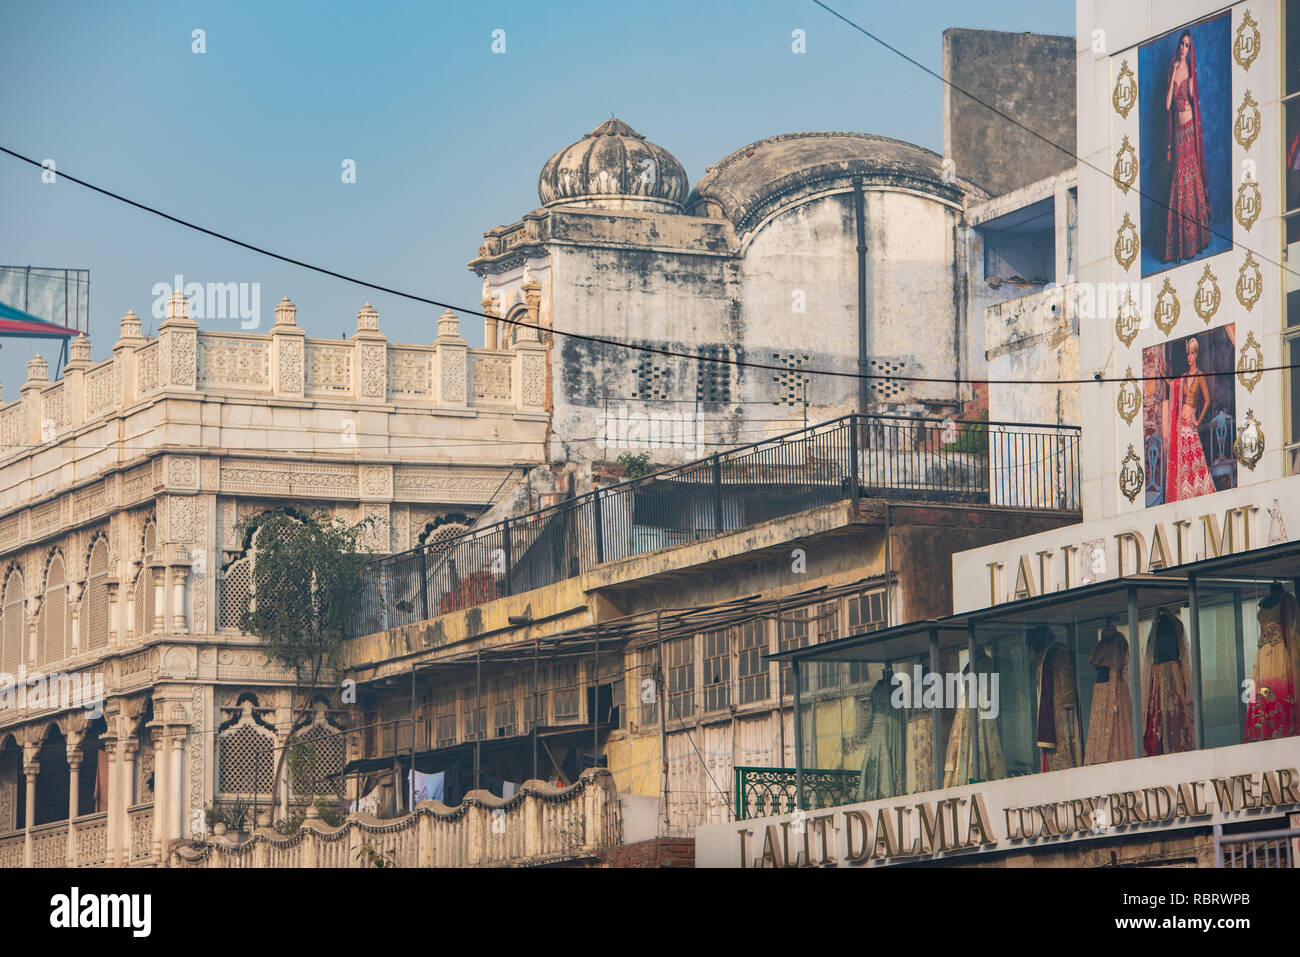 Detail of a street in Chandni Chowk, Delhi, India - Stock Image